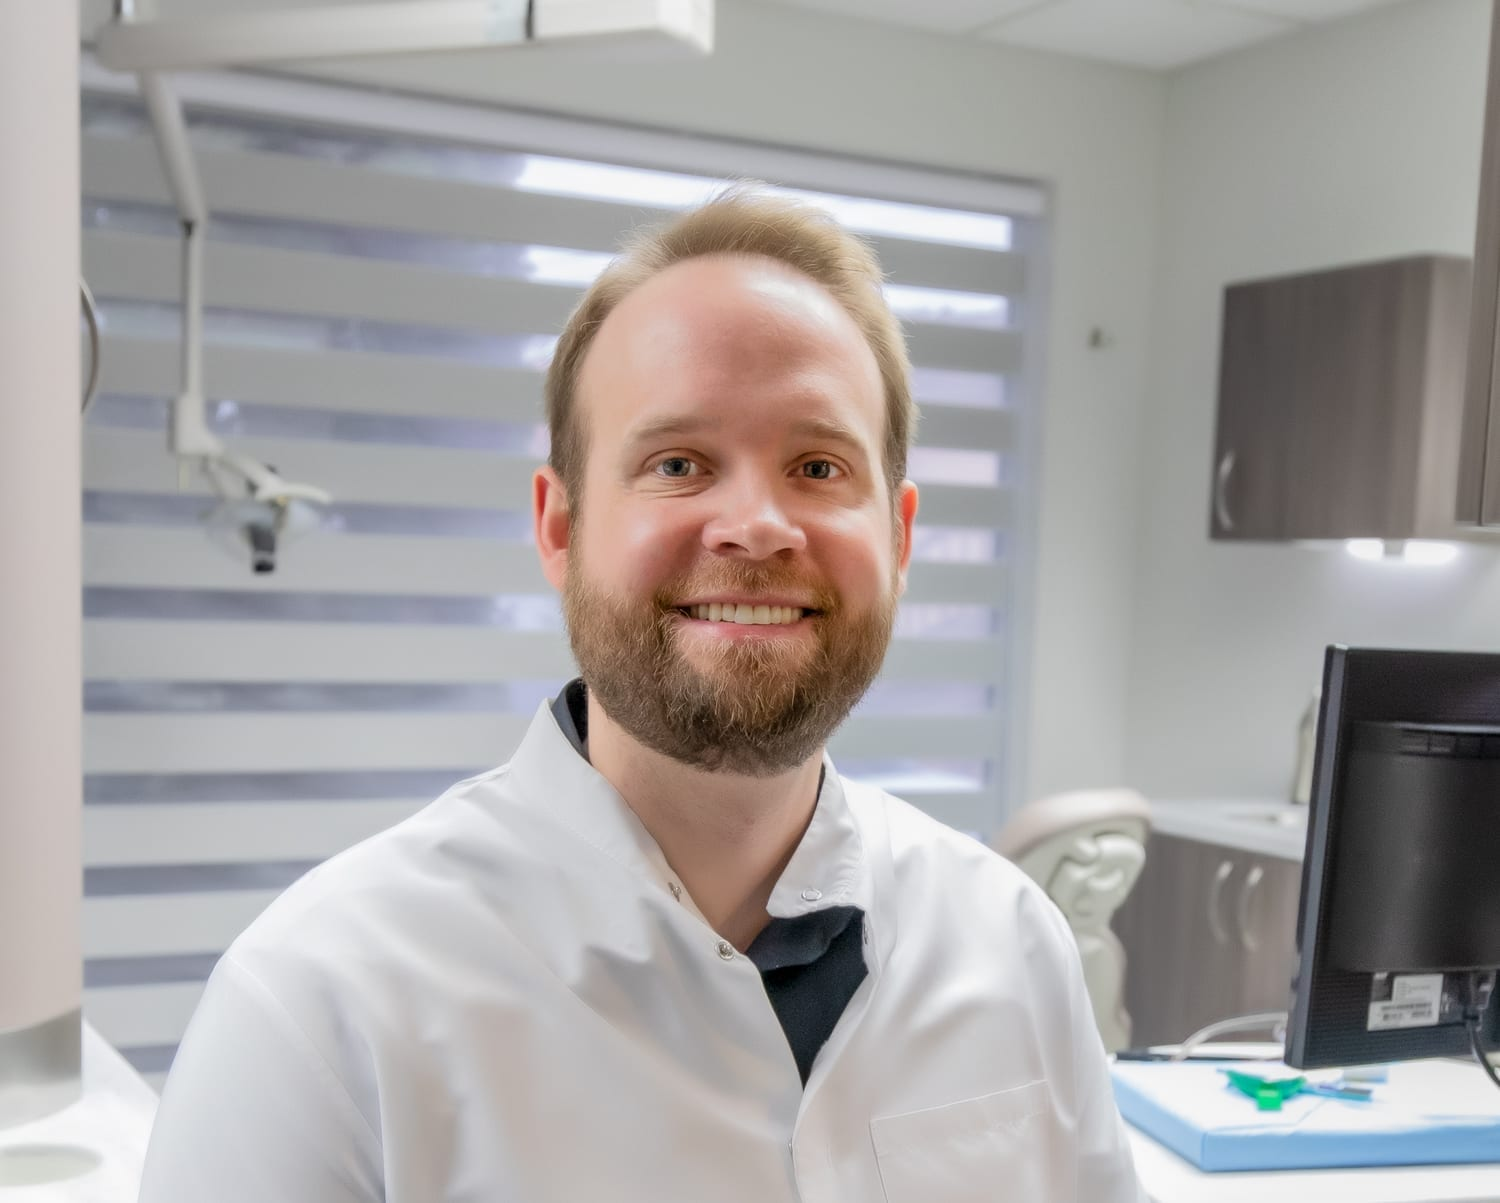 Dr. Jarom Smith from West Richland Family Dental